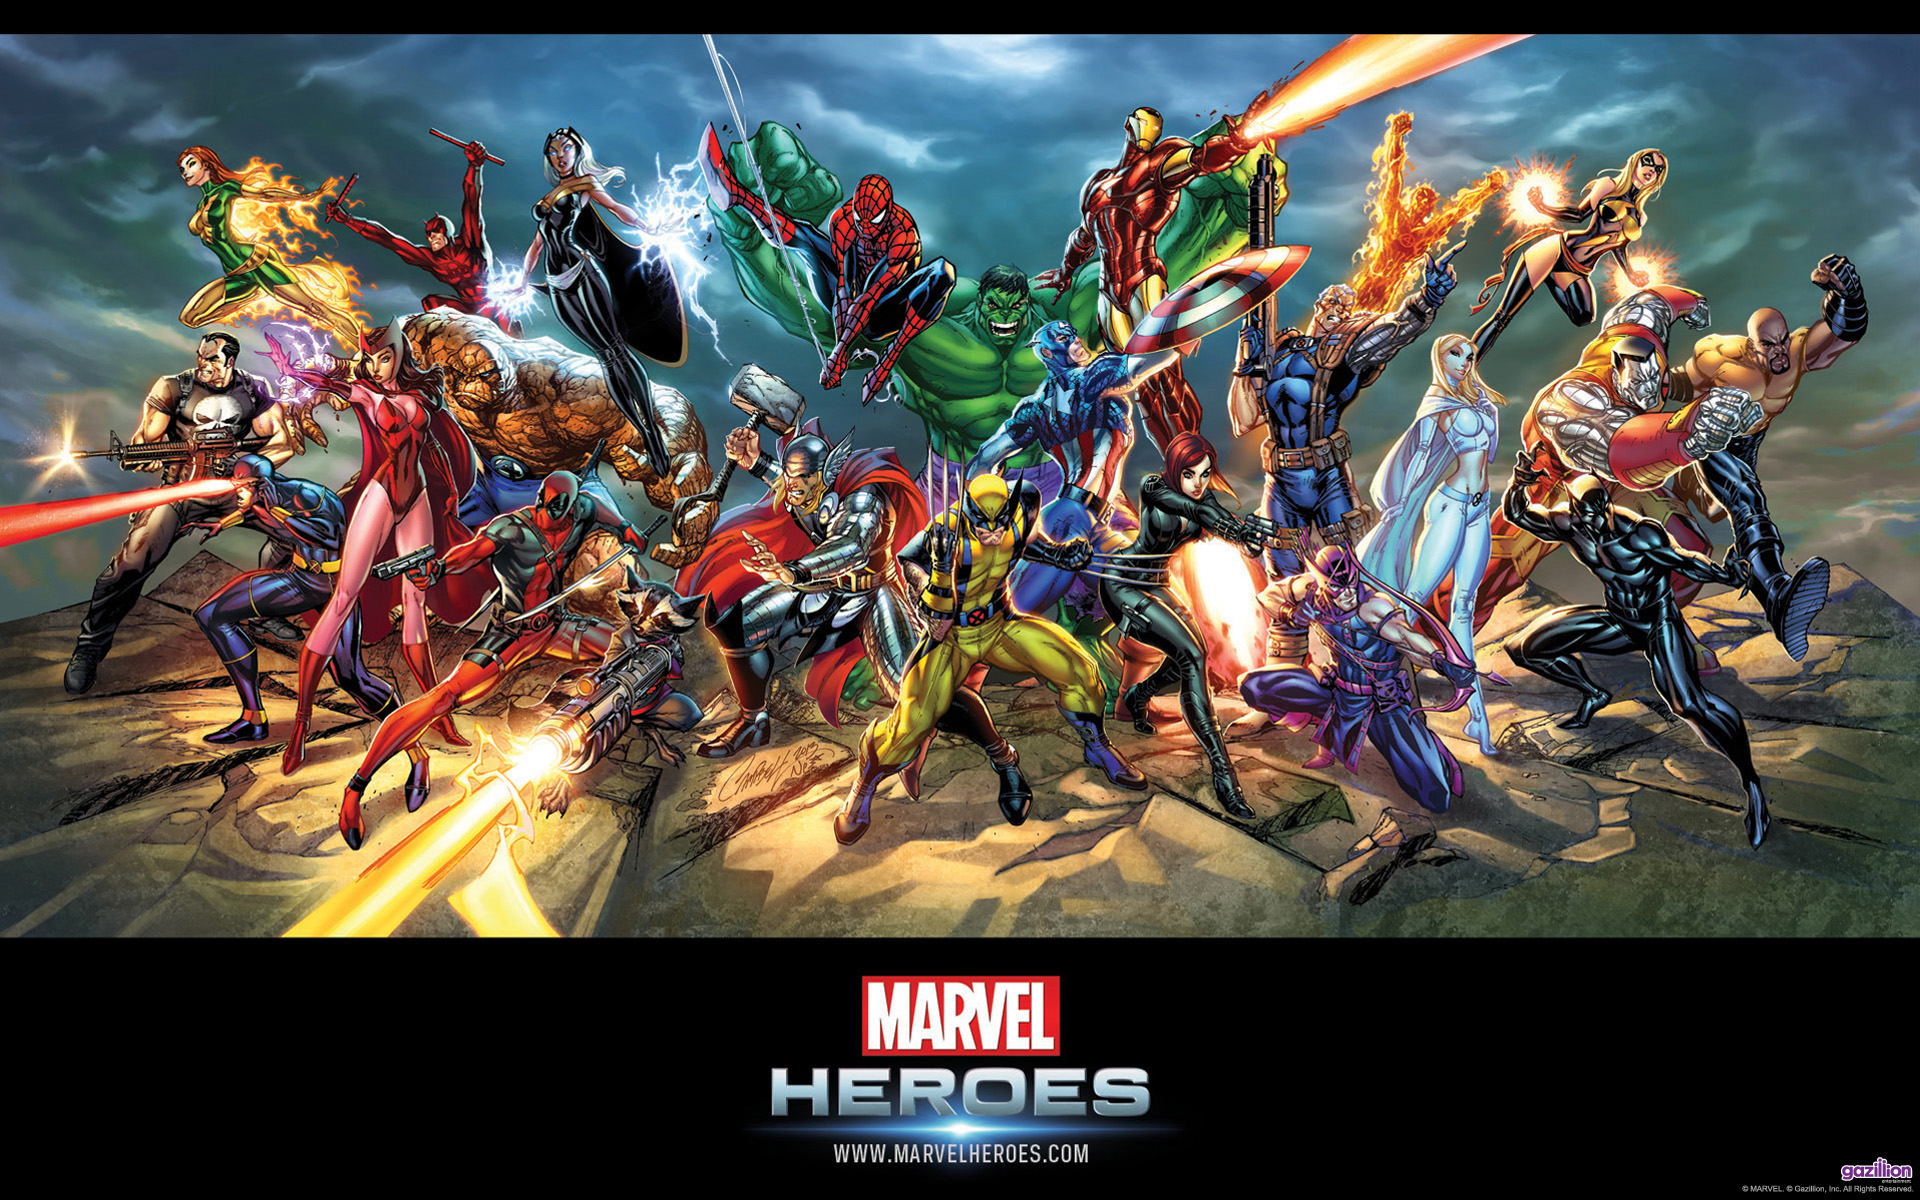 Marvel Heroes Wallpapers